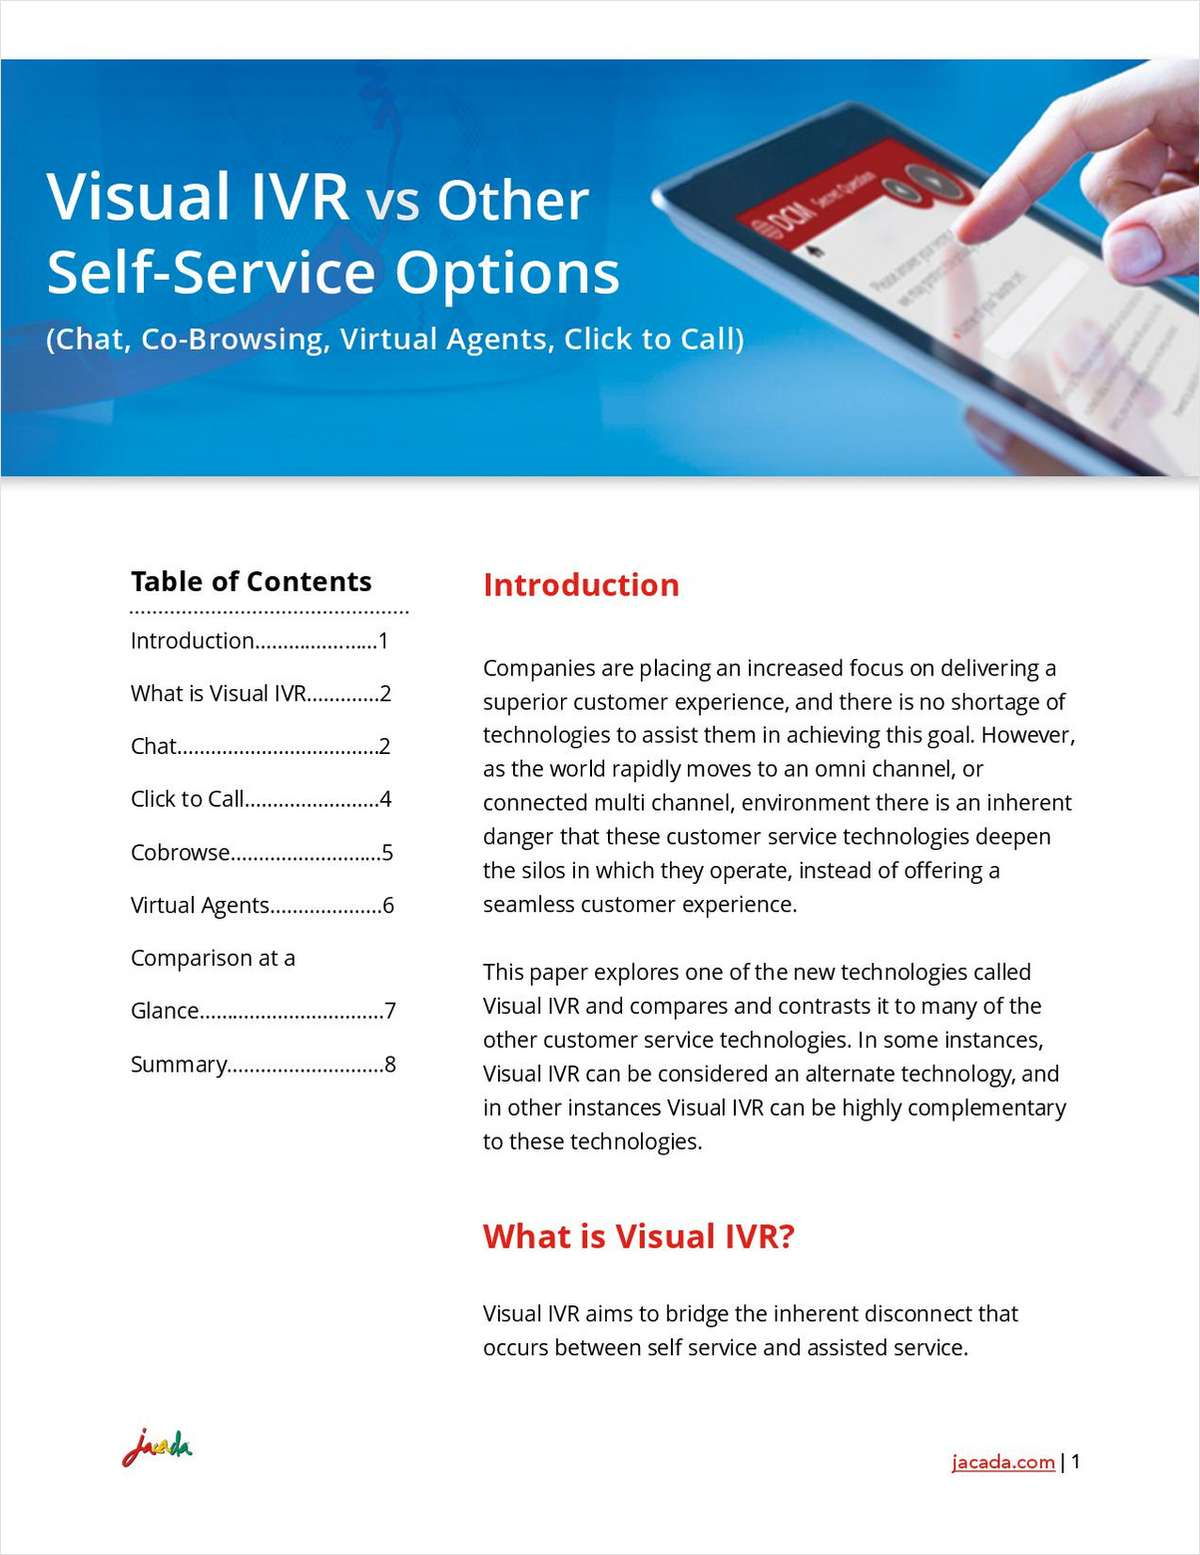 Visual IVR vs Other Self Service Options (Chat, Click to Call, Co-browse, Virtual Agents)